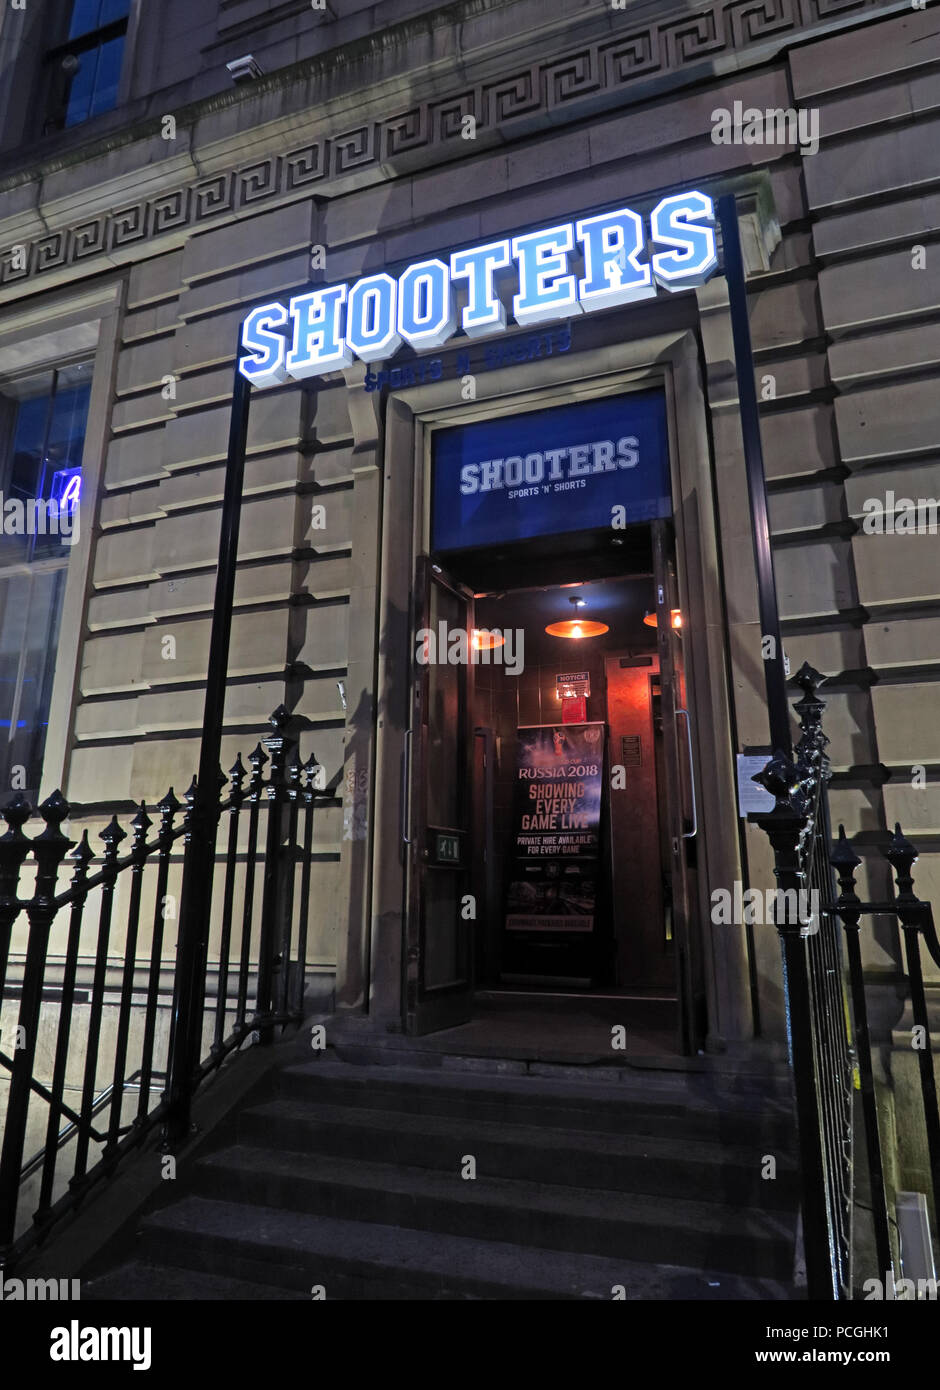 Shooters bar, The Headrow, Leeds city centre, West Yorkshire, England, LS1, UK - Stock Image